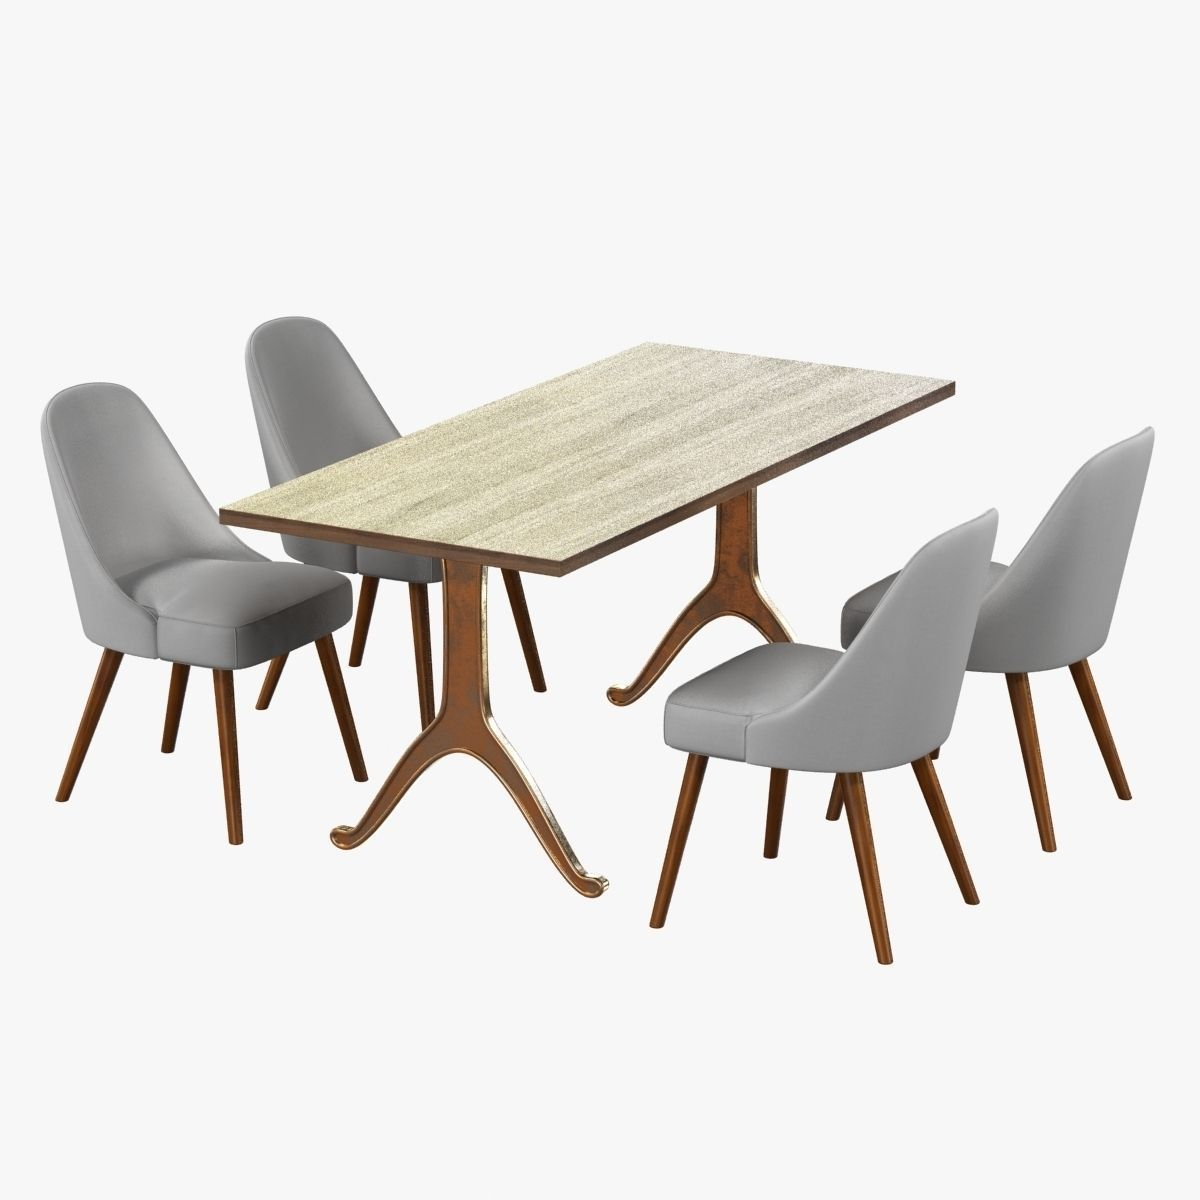 West Elm Mid Century Dining Chair And Table 3d Model Max Obj 3ds Fbx Mtl ...